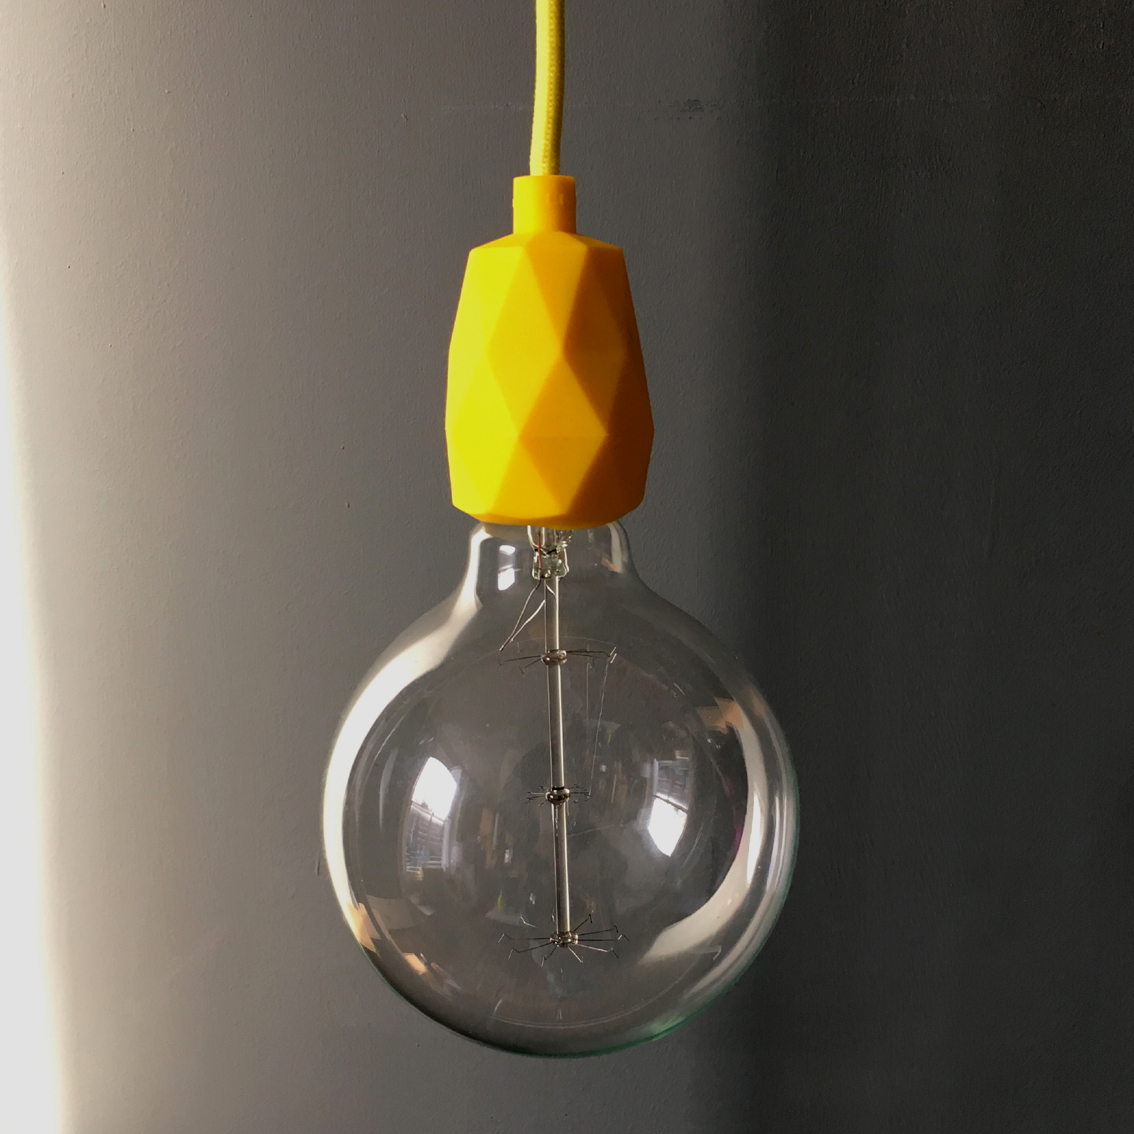 ... E27 Faceted Silicone Pendant Light Fitting in Sunshine Yellow ... & E27 Faceted Silicone Pendant Light Fitting in yellow azcodes.com